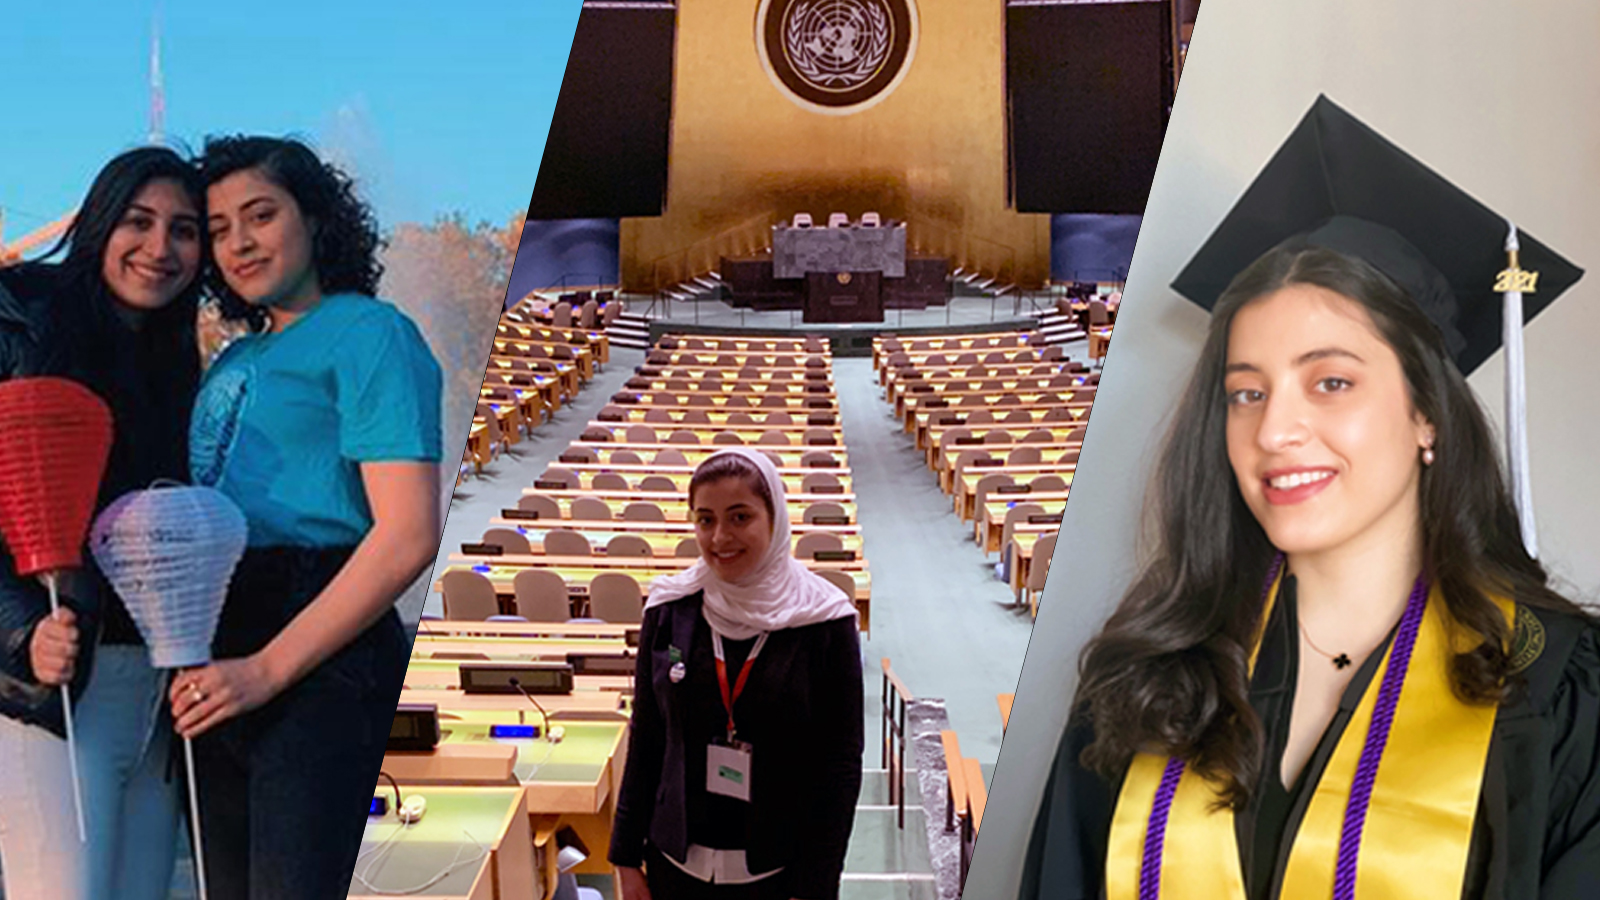 Photo collage of Maha and friend at Light the Night walk, Maha at the UN, and Maha in graduation attire